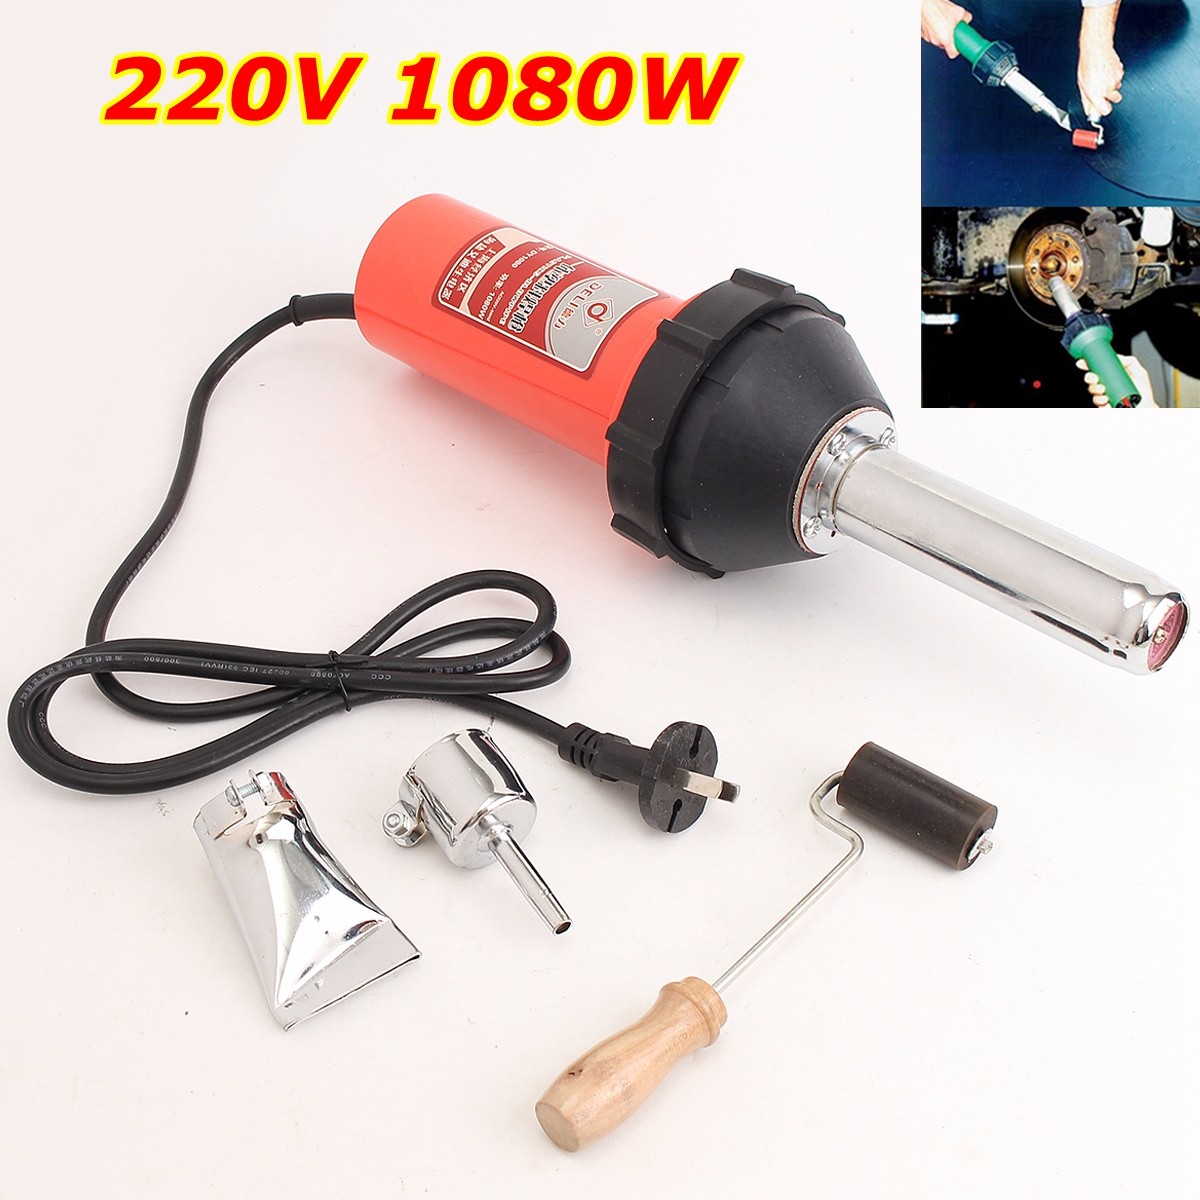 220V 1080W 50Hz Plastic Welding Hot Air Torch Welding Gun Pistol Tool w/ Nozzle and Pressure Roller Kit for Welding Machine 1pc 40mm silicone pressure roller for hot air heating welding wooden handle pressure roller